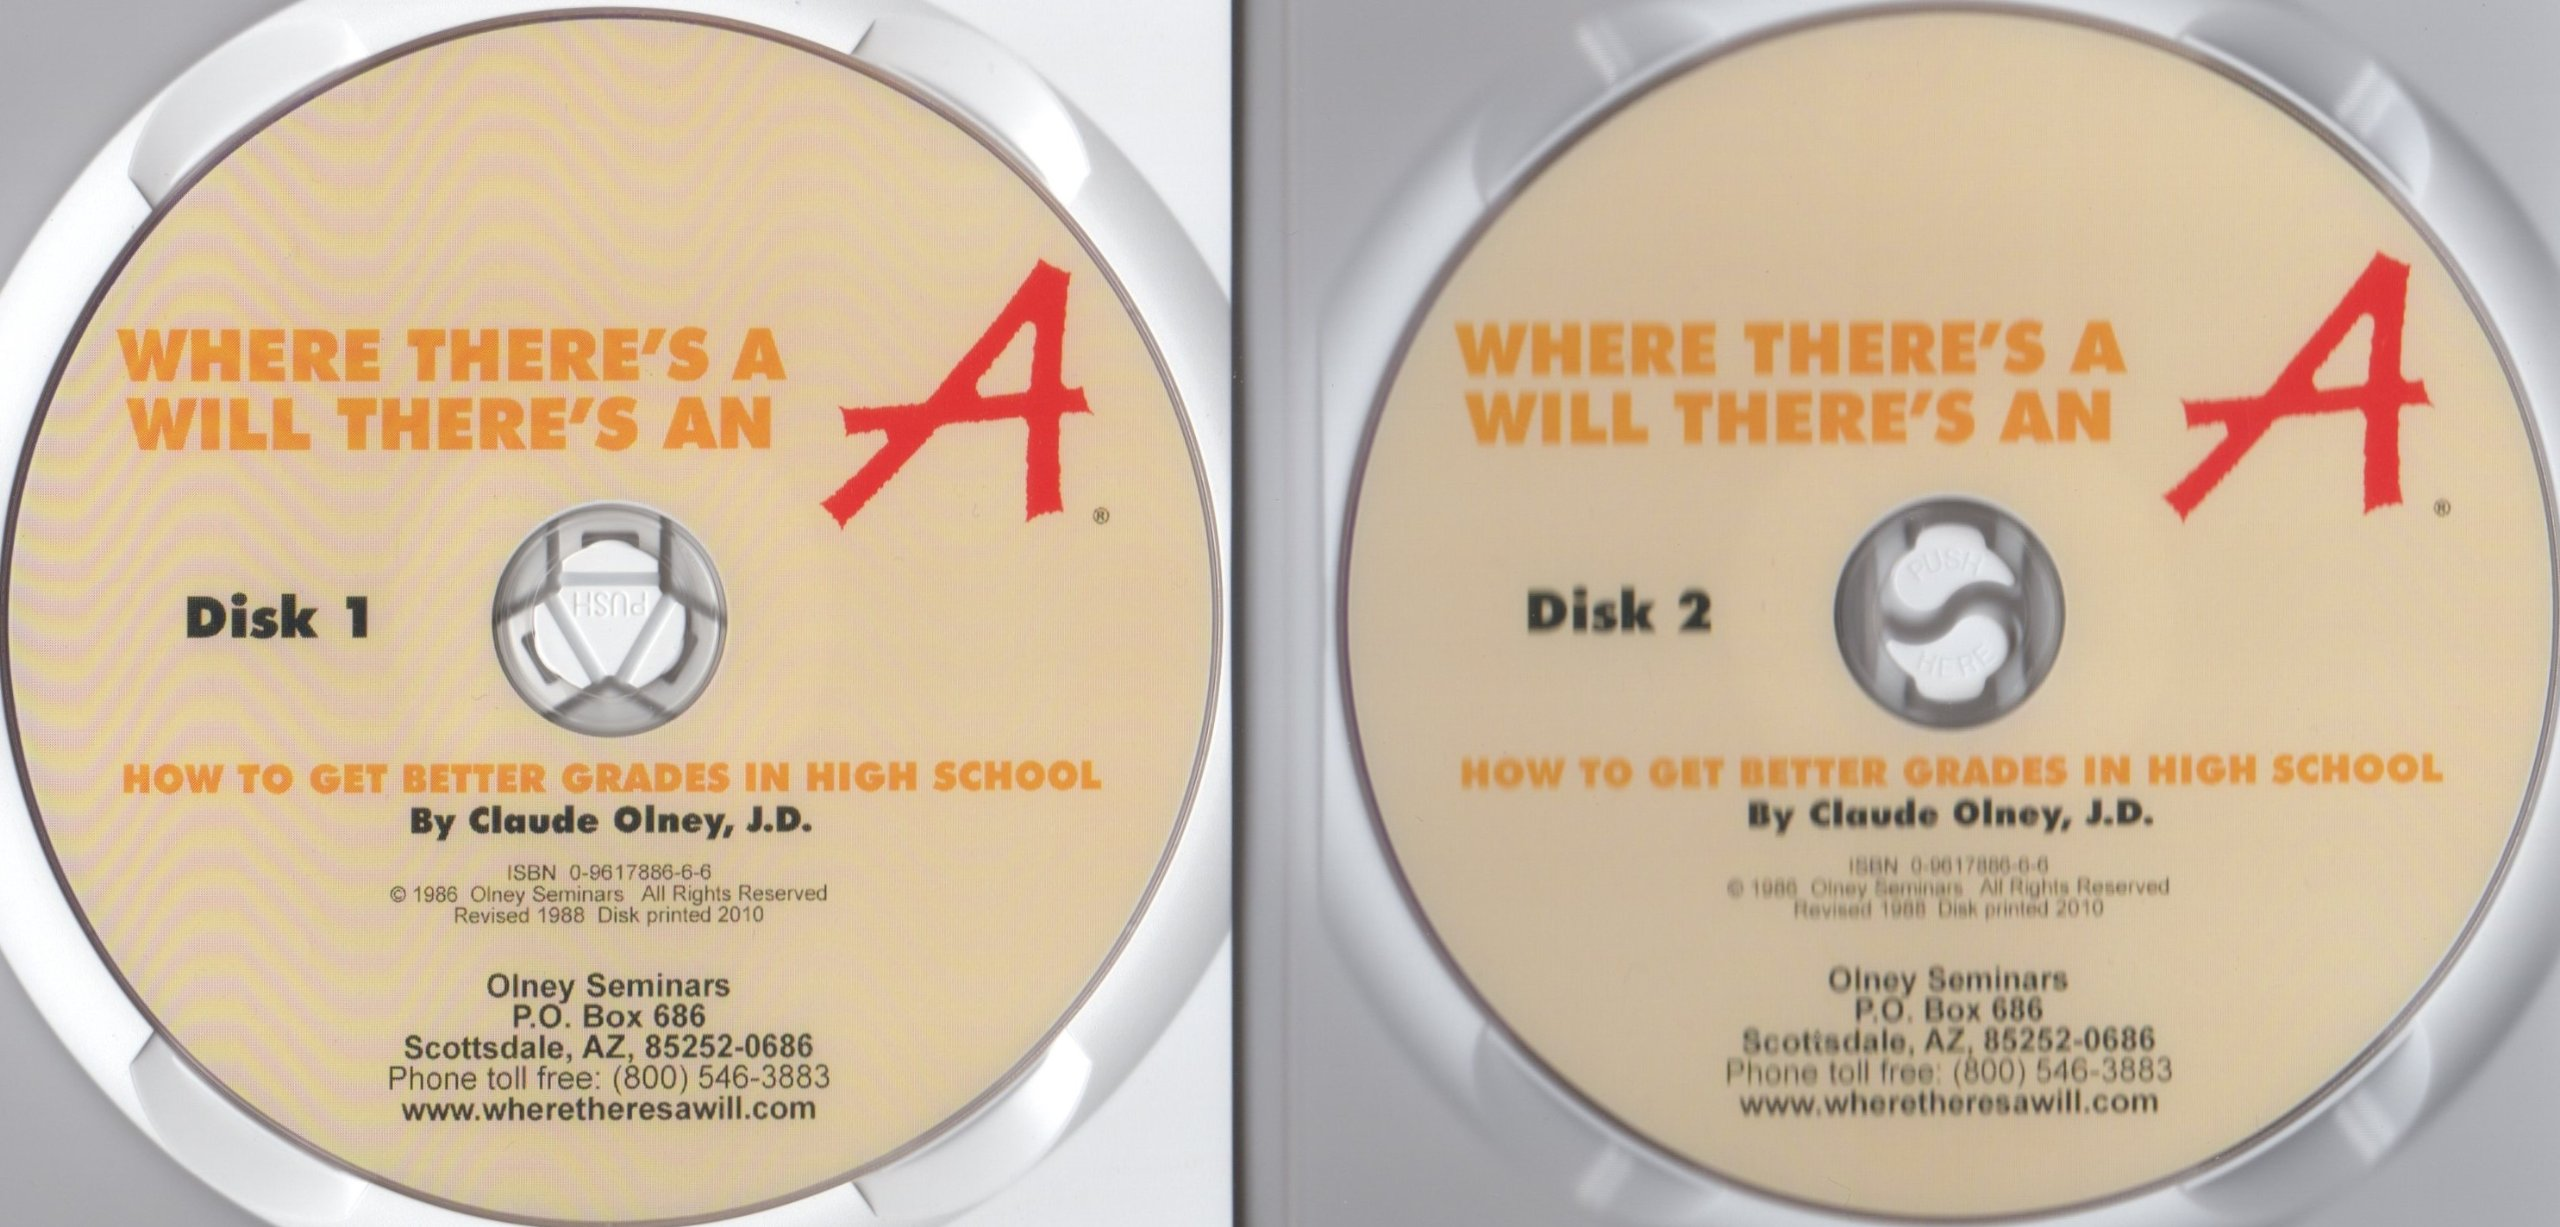 where there s a will there s an a how to get better grades in where there s a will there s an a how to get better grades in high school 2 disc dvd set seminar manual clause olney 9780961788667 amazon com books